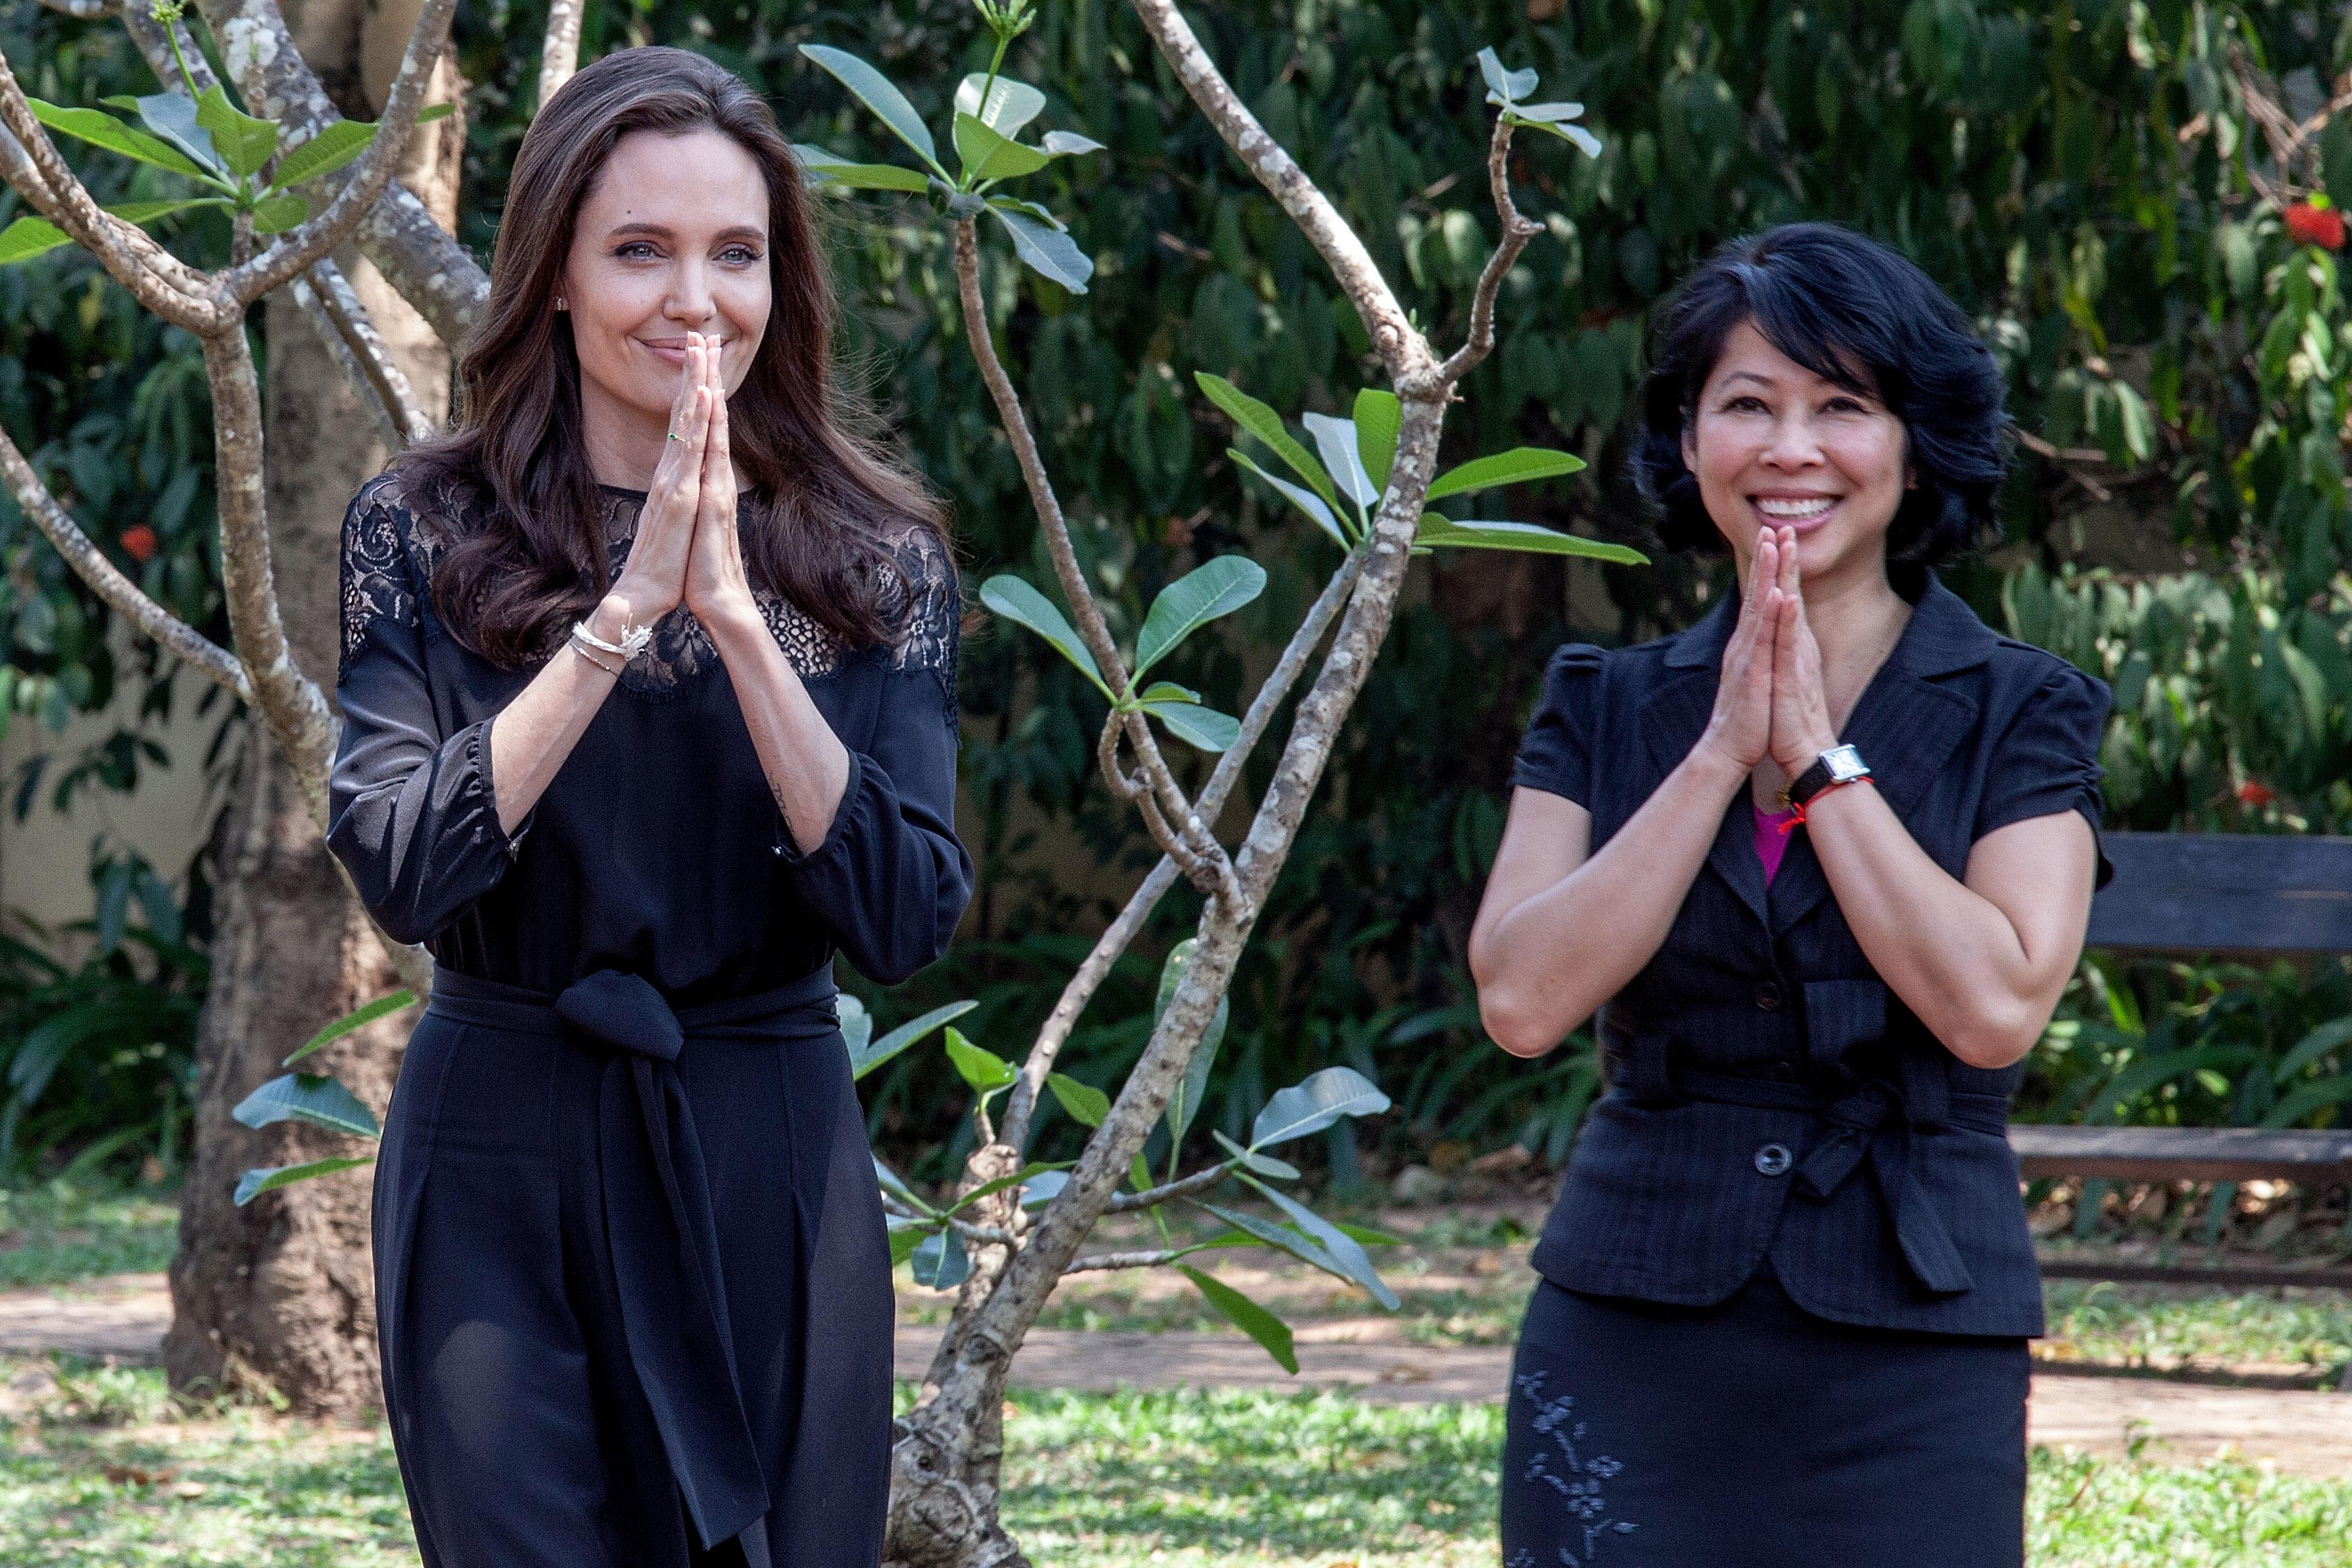 Angelina Jolie Loung Ung